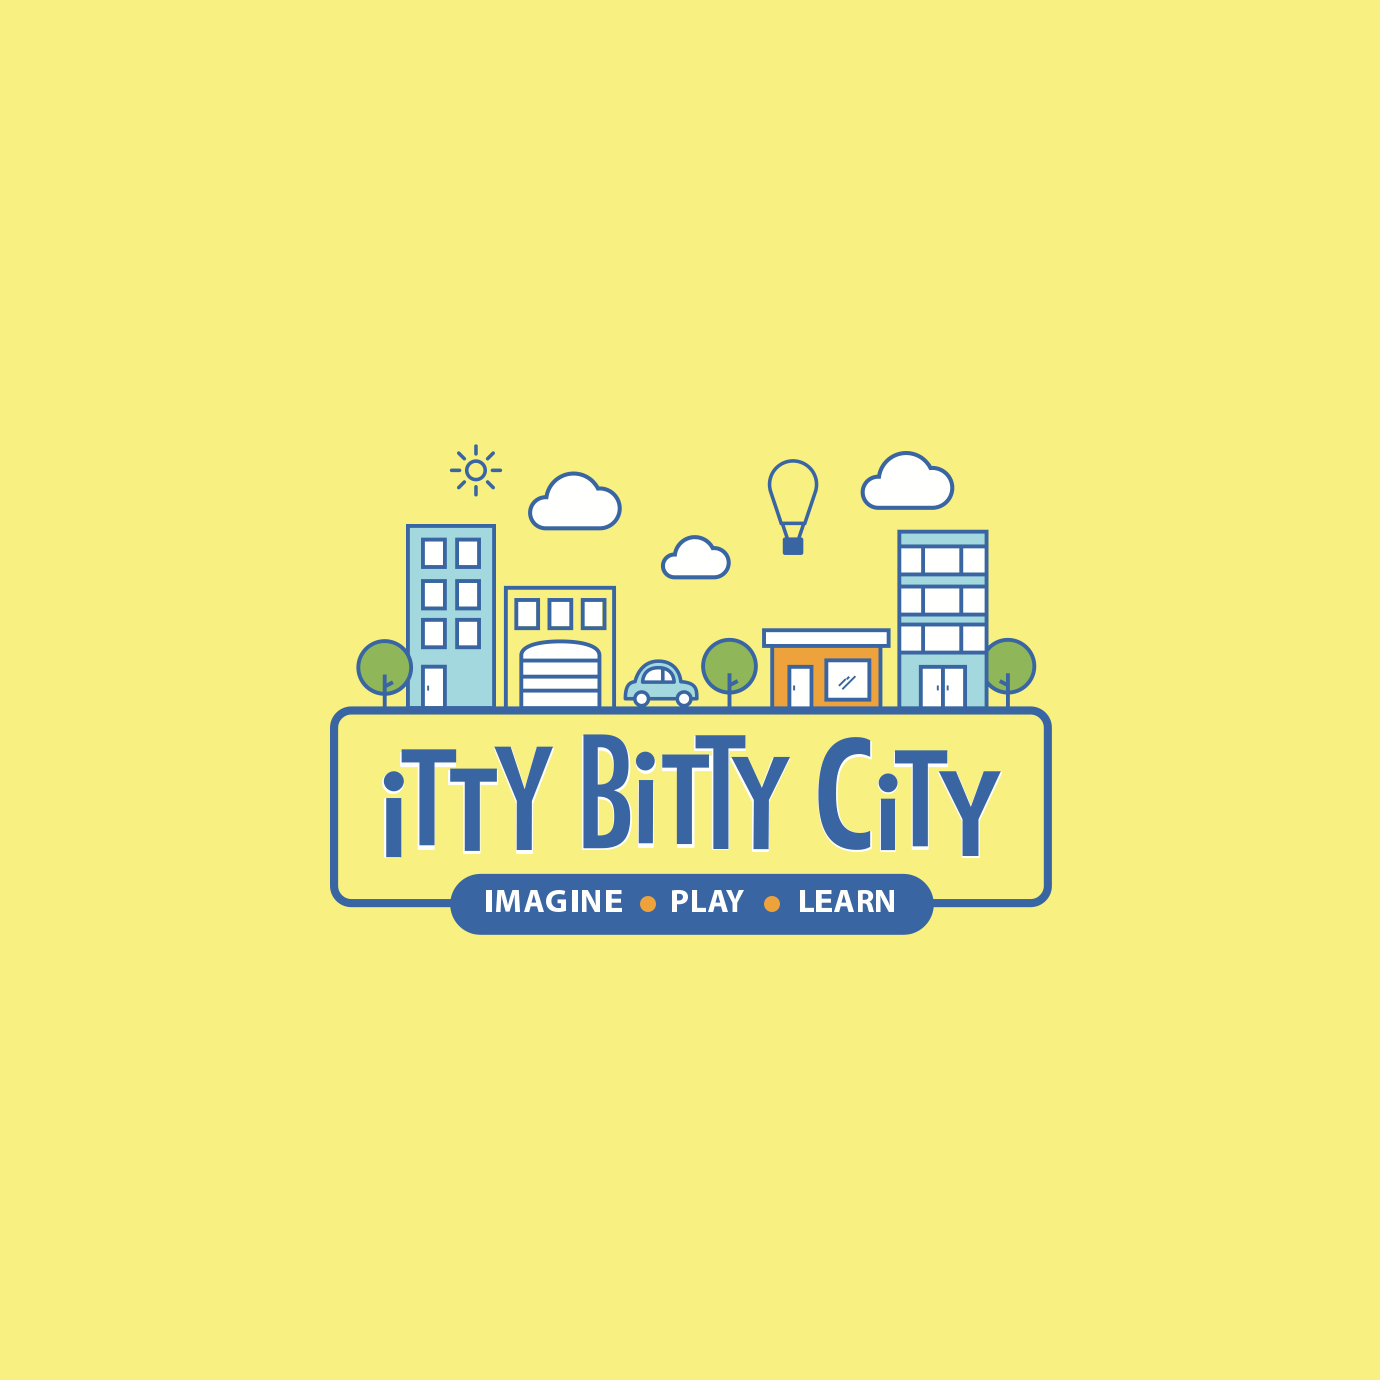 Itty Bitty City